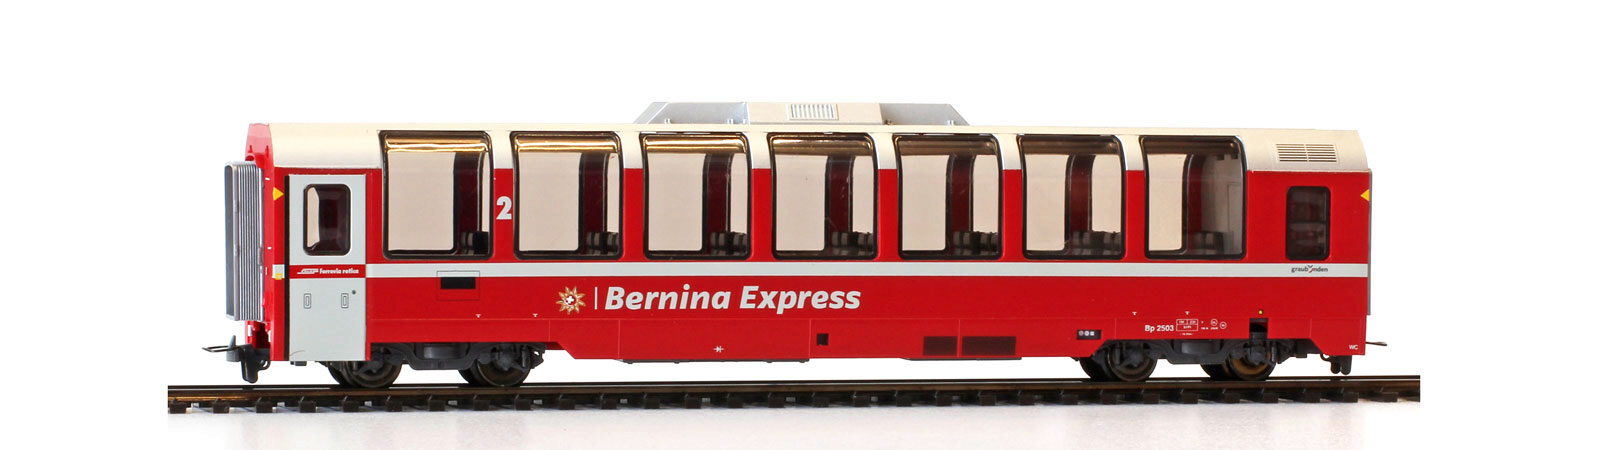 Bemo 3294143 RhB Bp 2503 Panoramawagen Bernina-Express